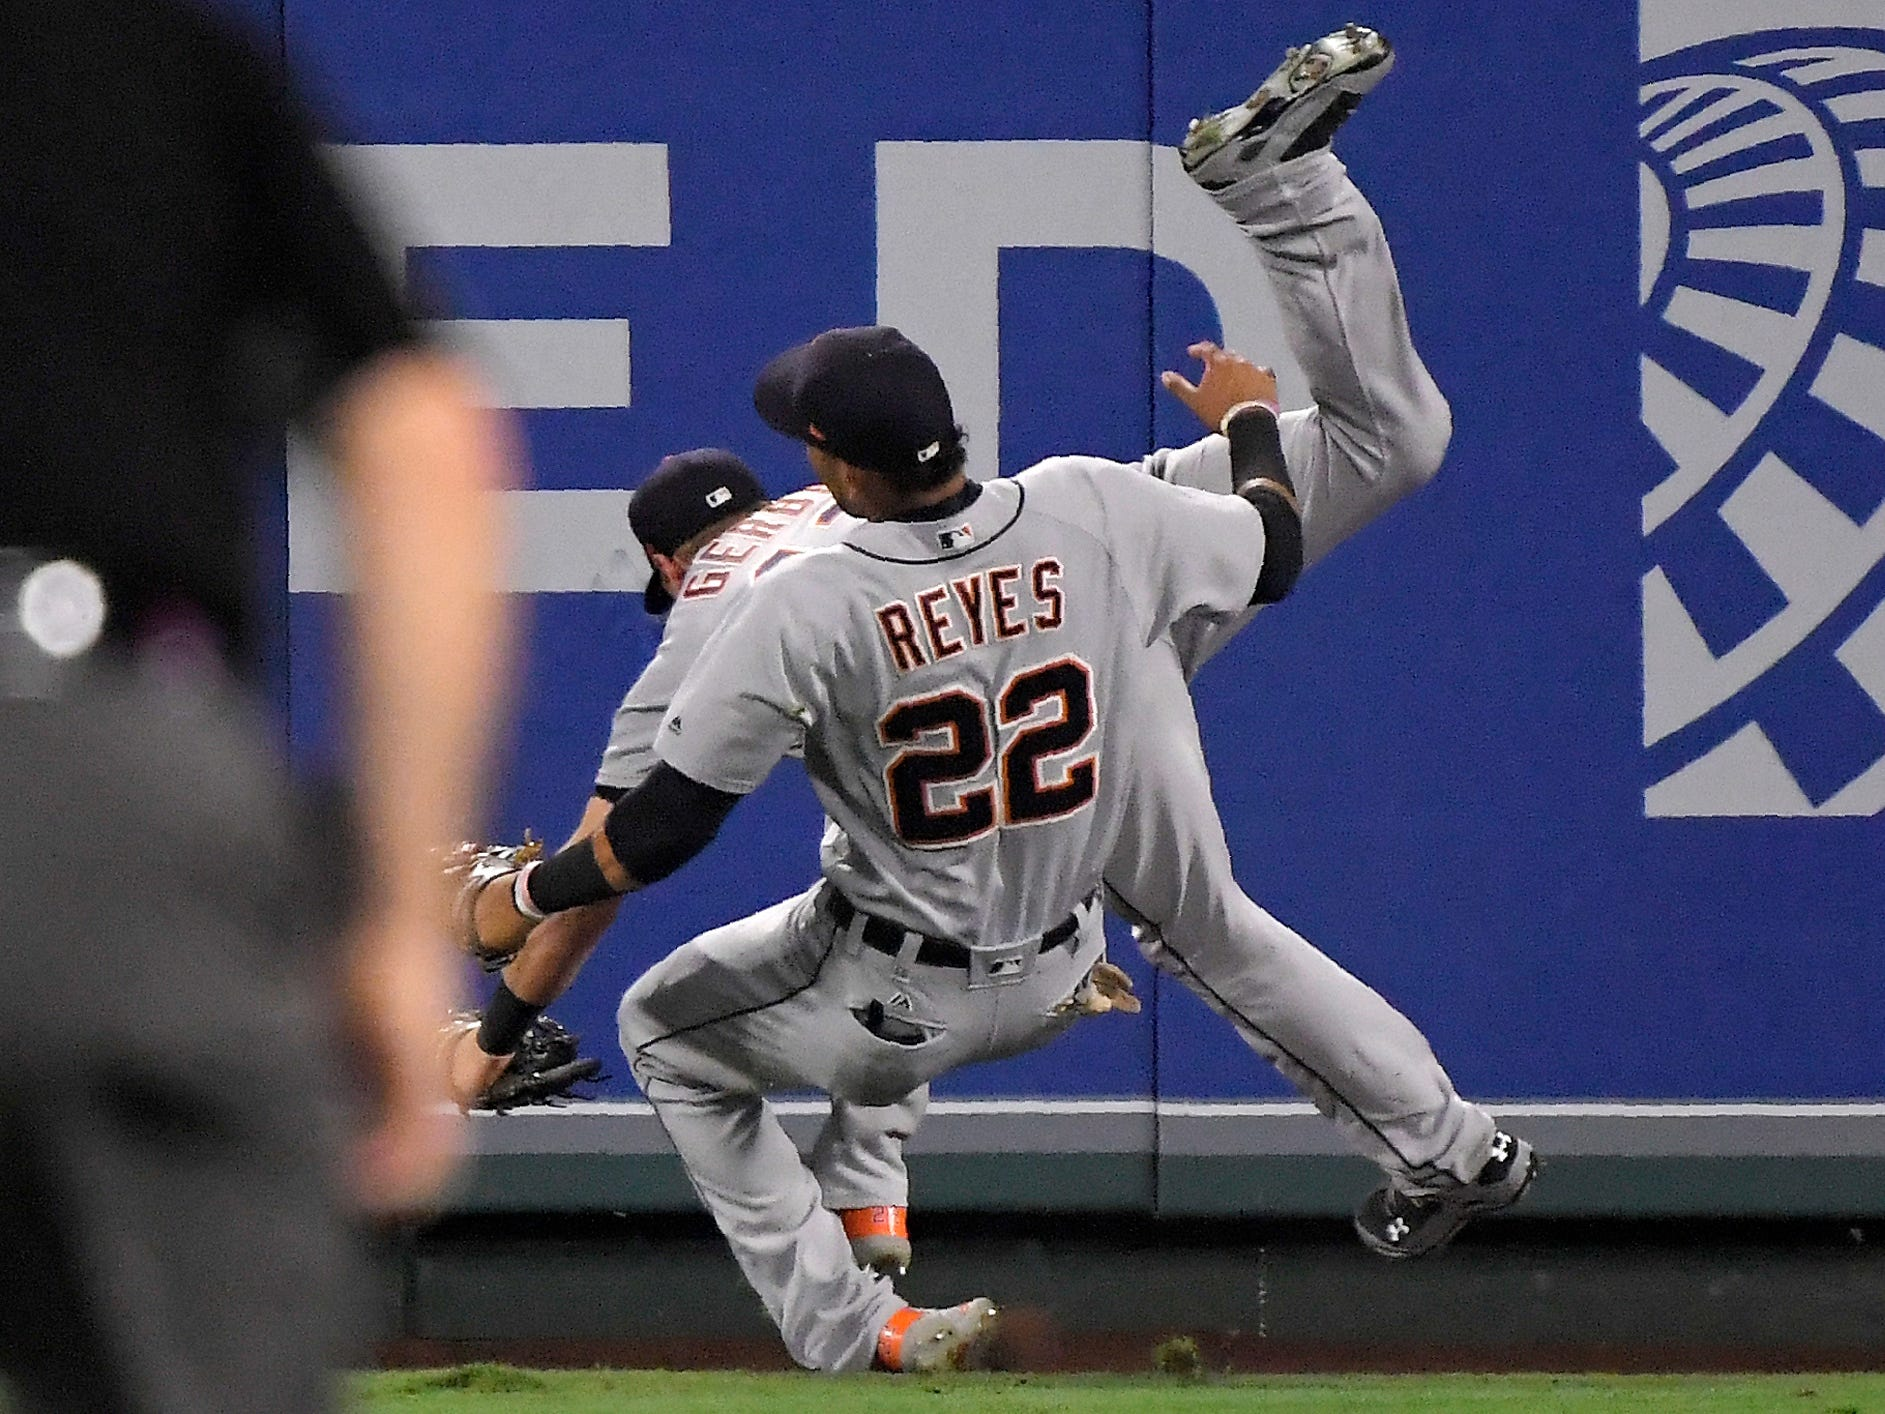 Detroit Tigers center fielder Mike Gerber, left, collides with left fielder Victor Reyes after making a catch on a ball hit by Los Angeles Angels' Kole Calhoun during the third inning.